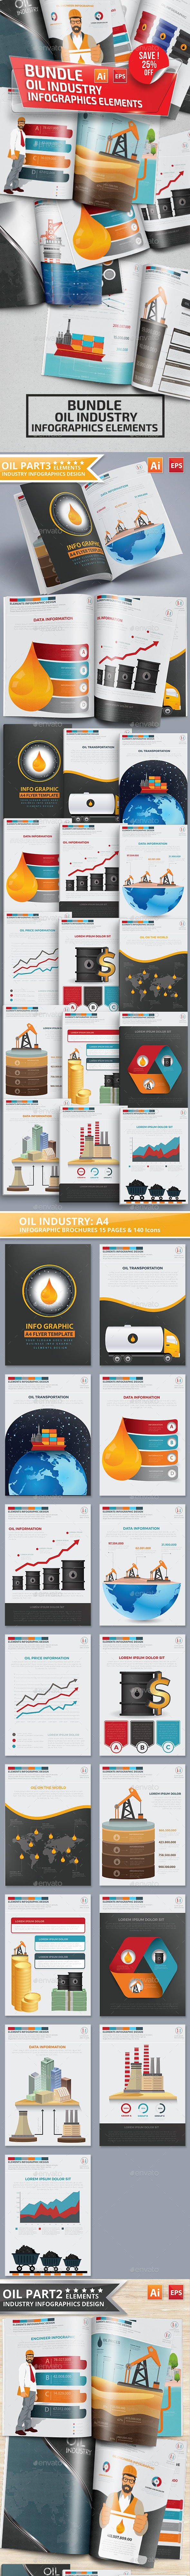 Bundle Oil Industry Infographic Elements - Infographics